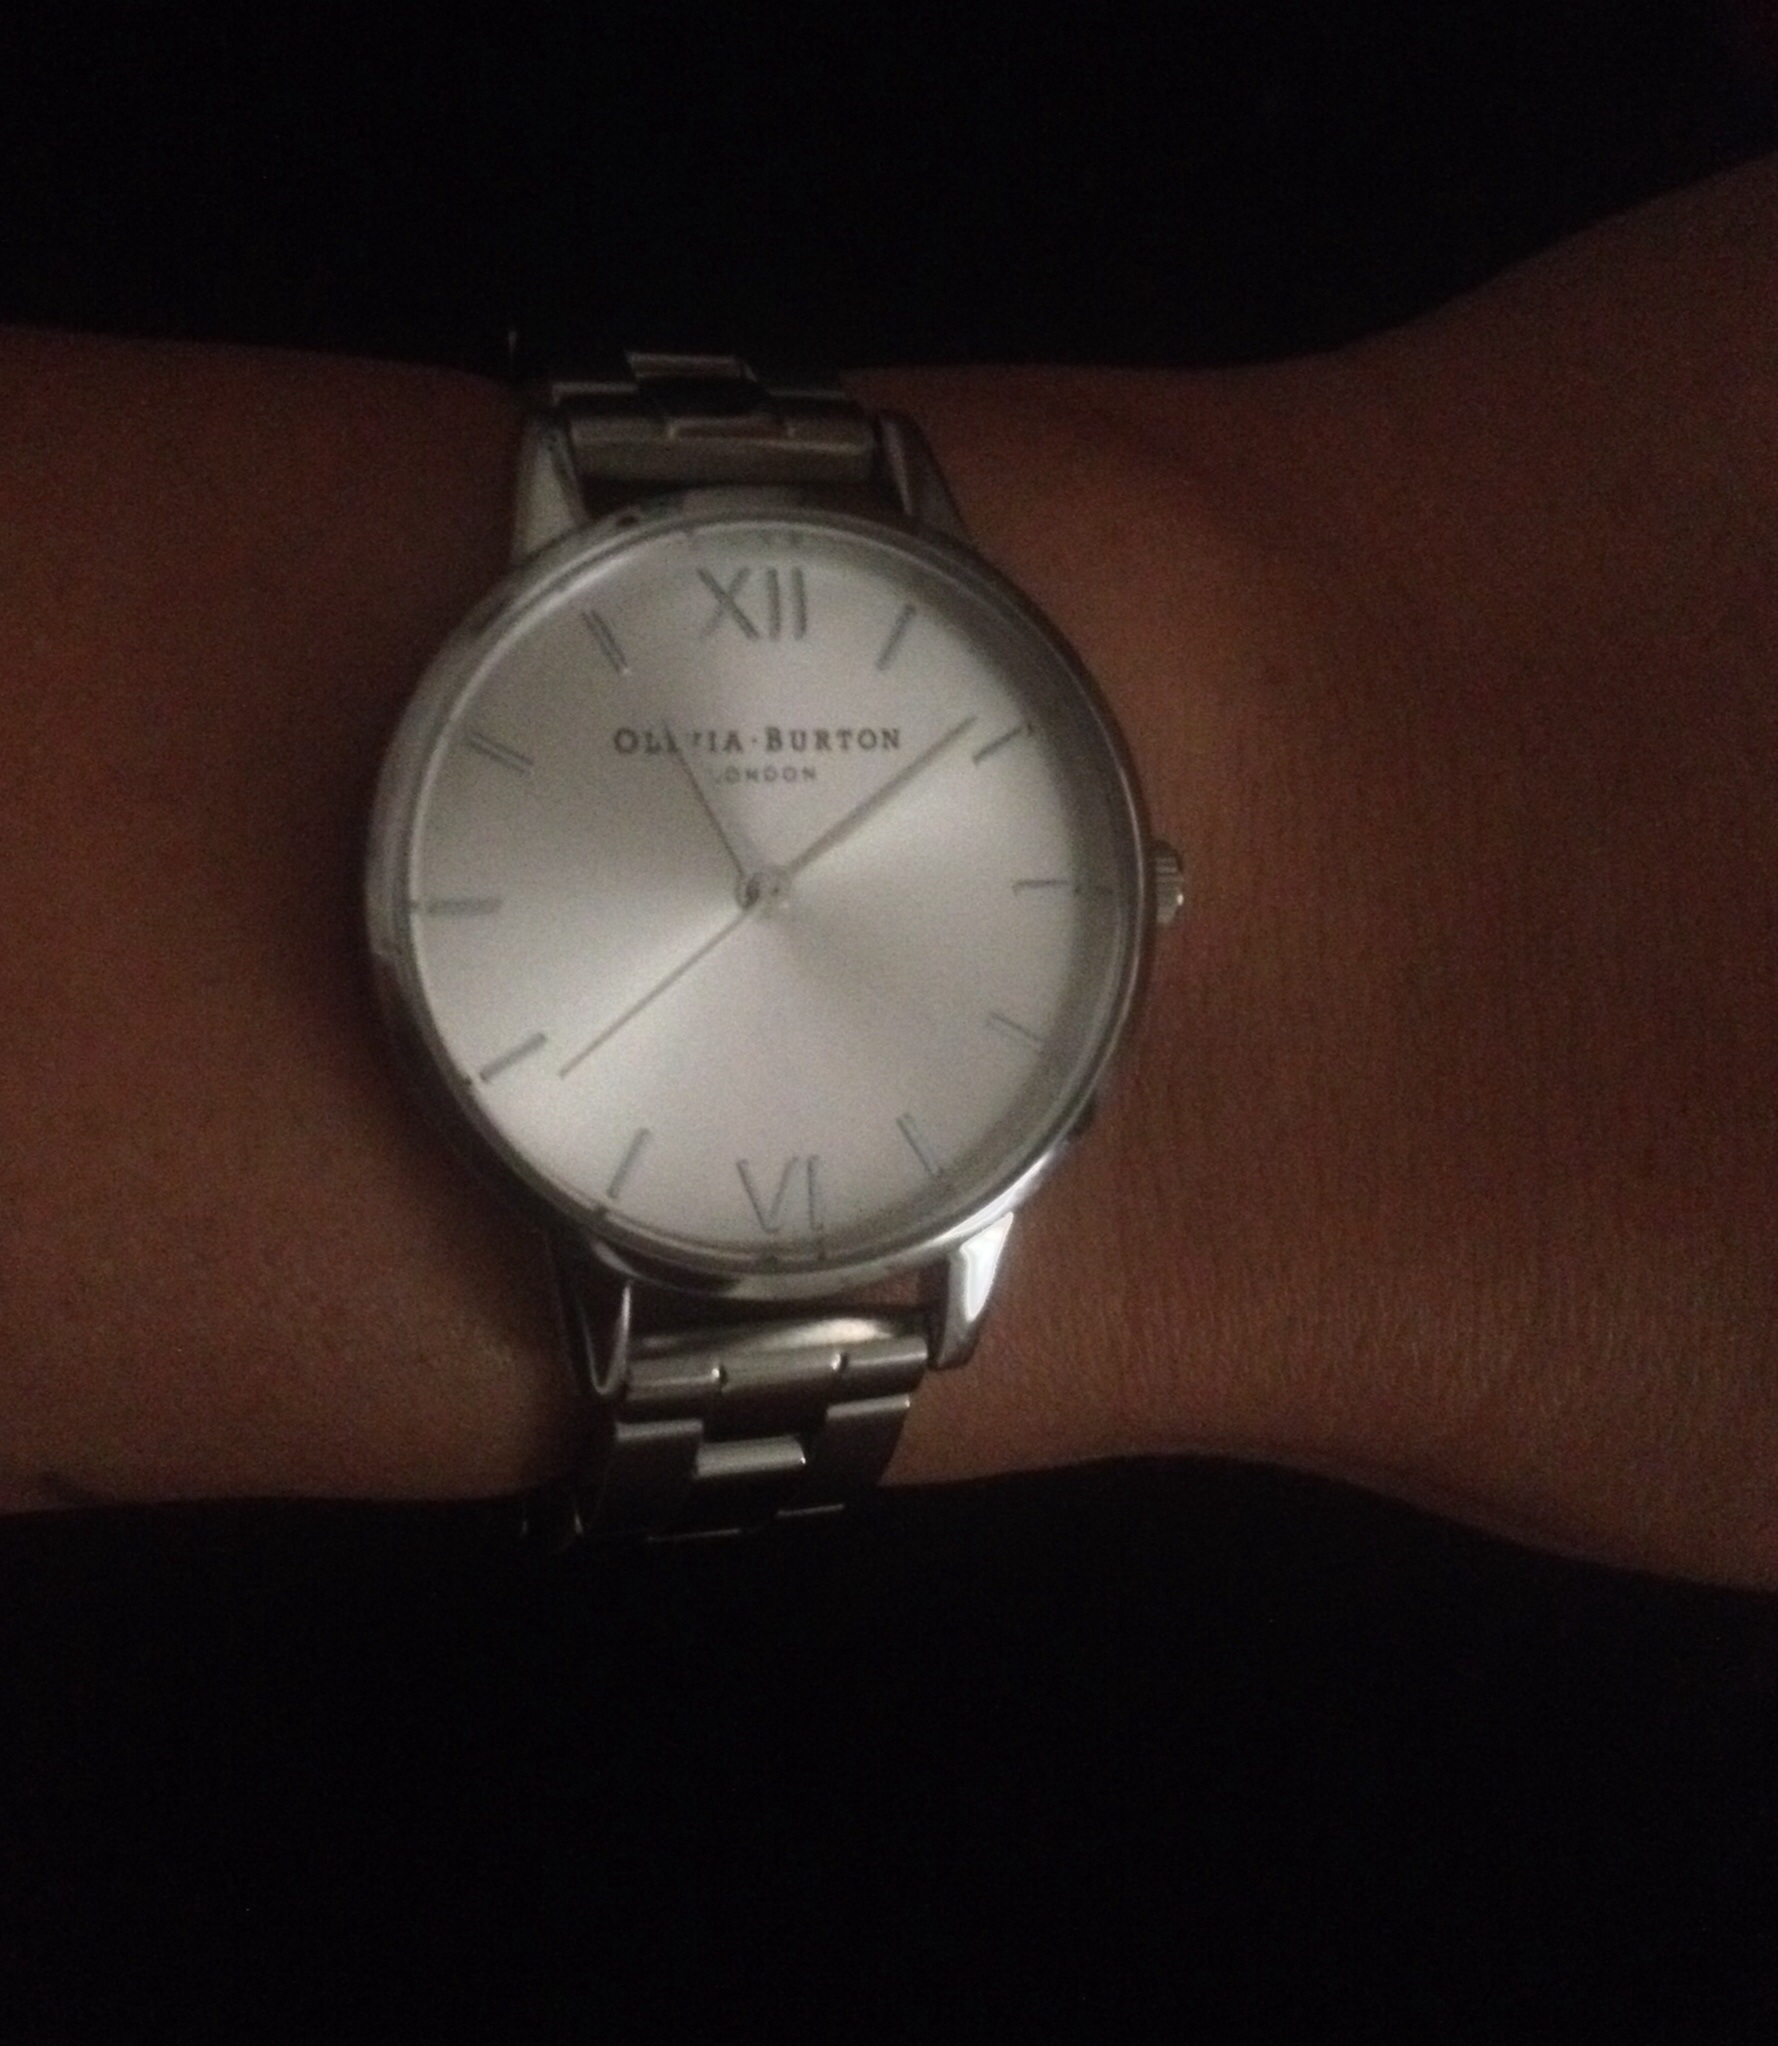 cb329941fcf8 Olivia Burton Silver Midi Watch. This item is exactly as described and is  beautiful. The design is simple but dainty